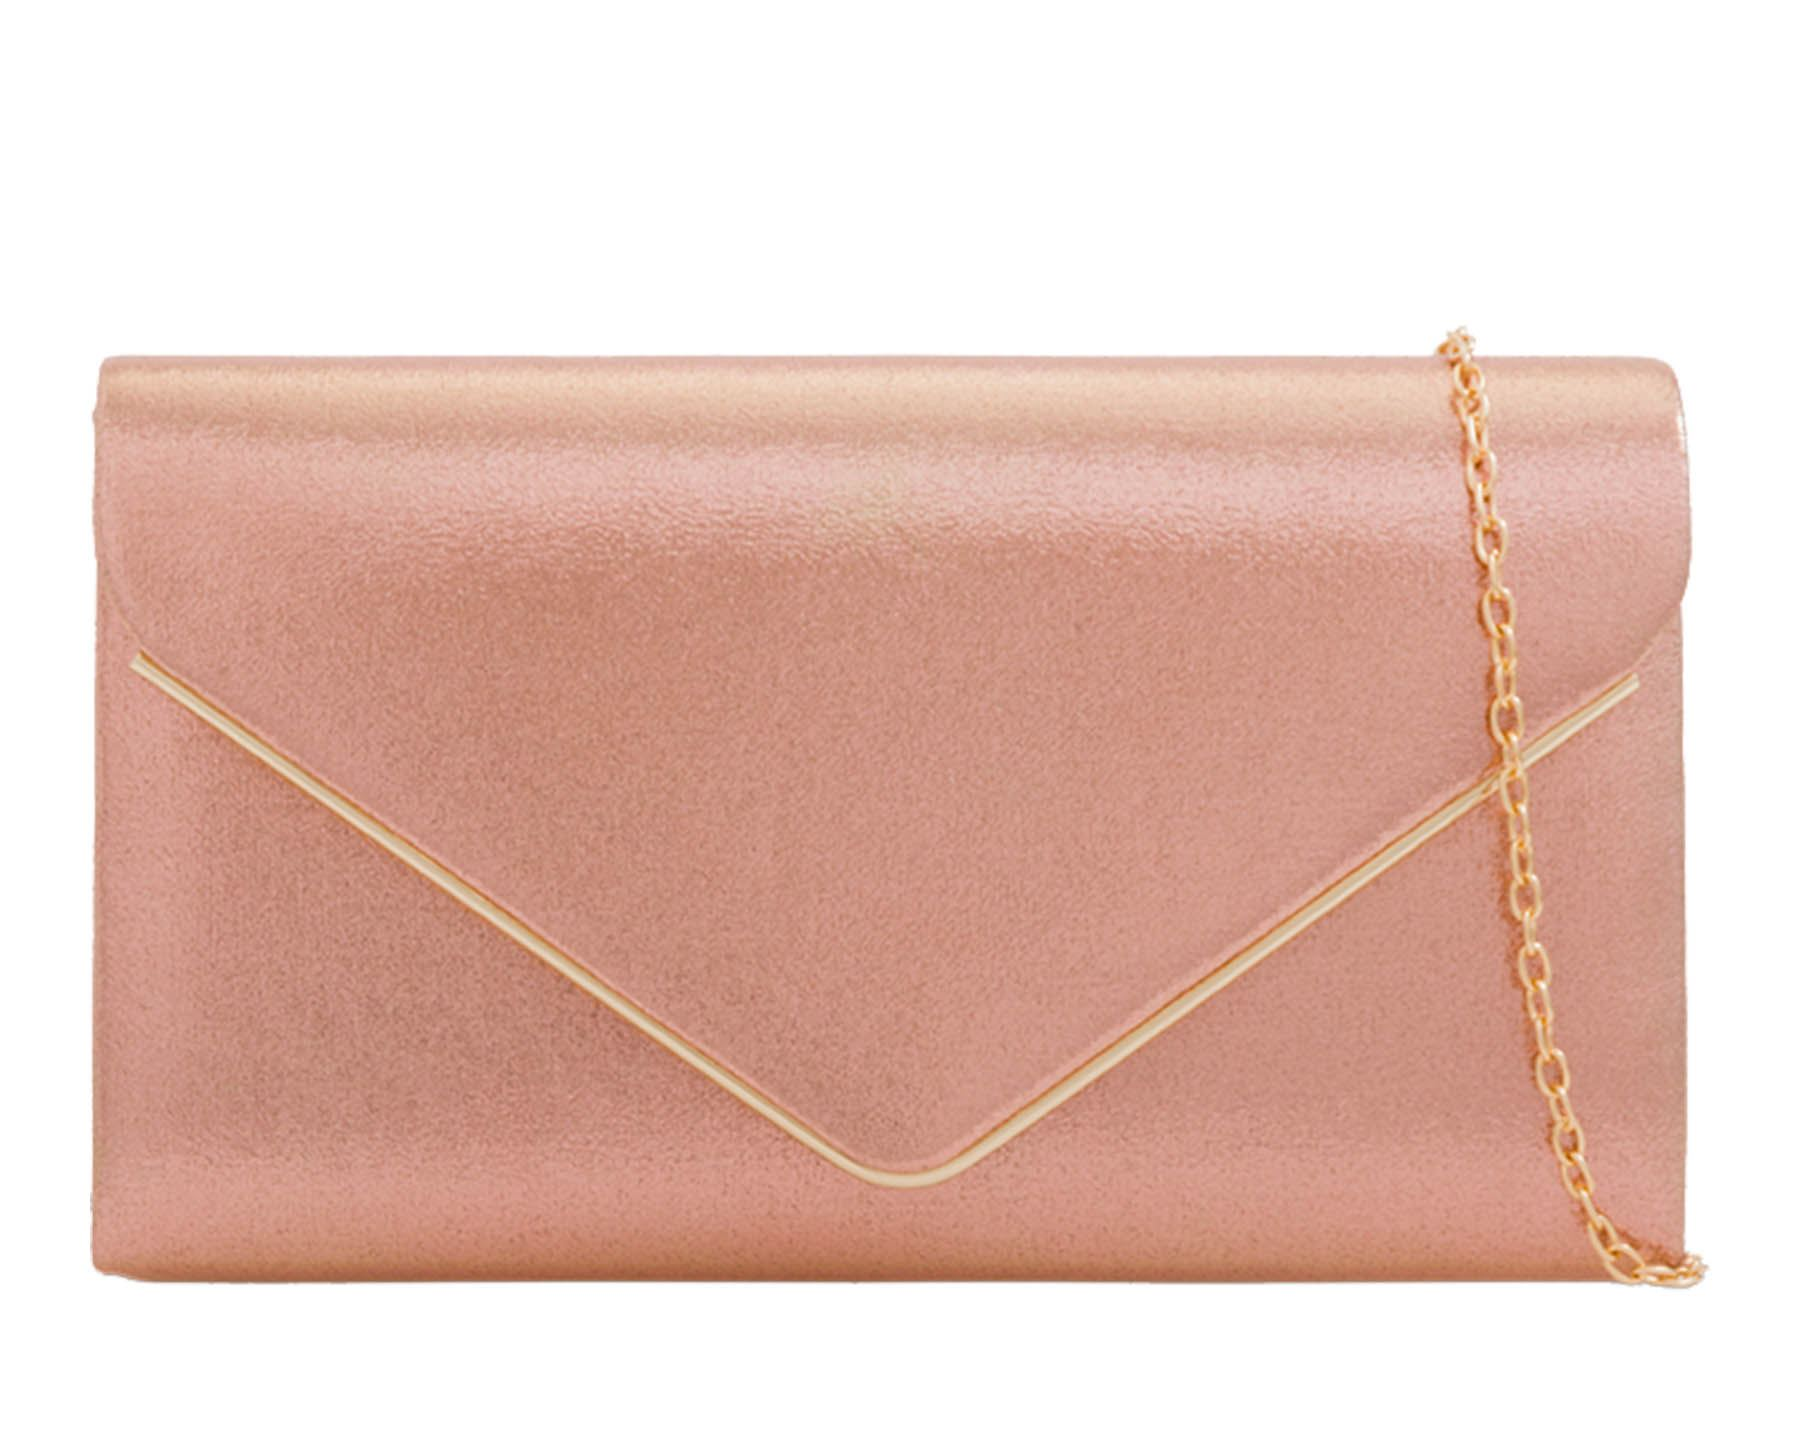 NEW-WOMENS-CLASSIC-ENVELOPE-FAUX-SUEDE-METAL-TRIM-CHAIN-STRAP-EVENING-CLUTCH-BAG